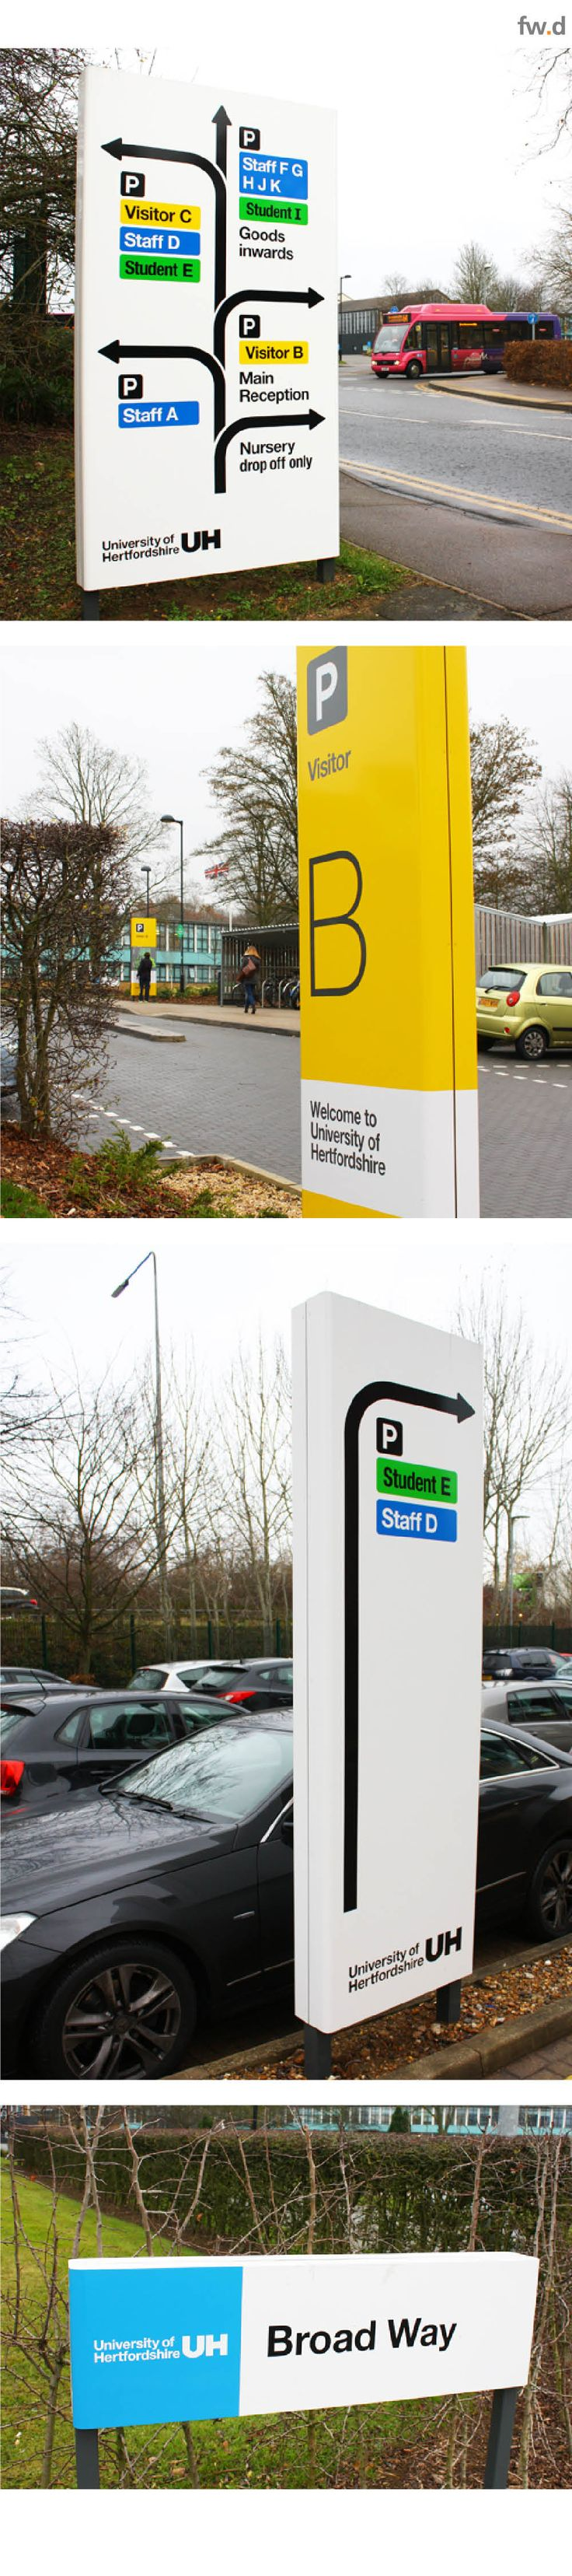 Vehicular signage for University of Hertfordshire Campus.